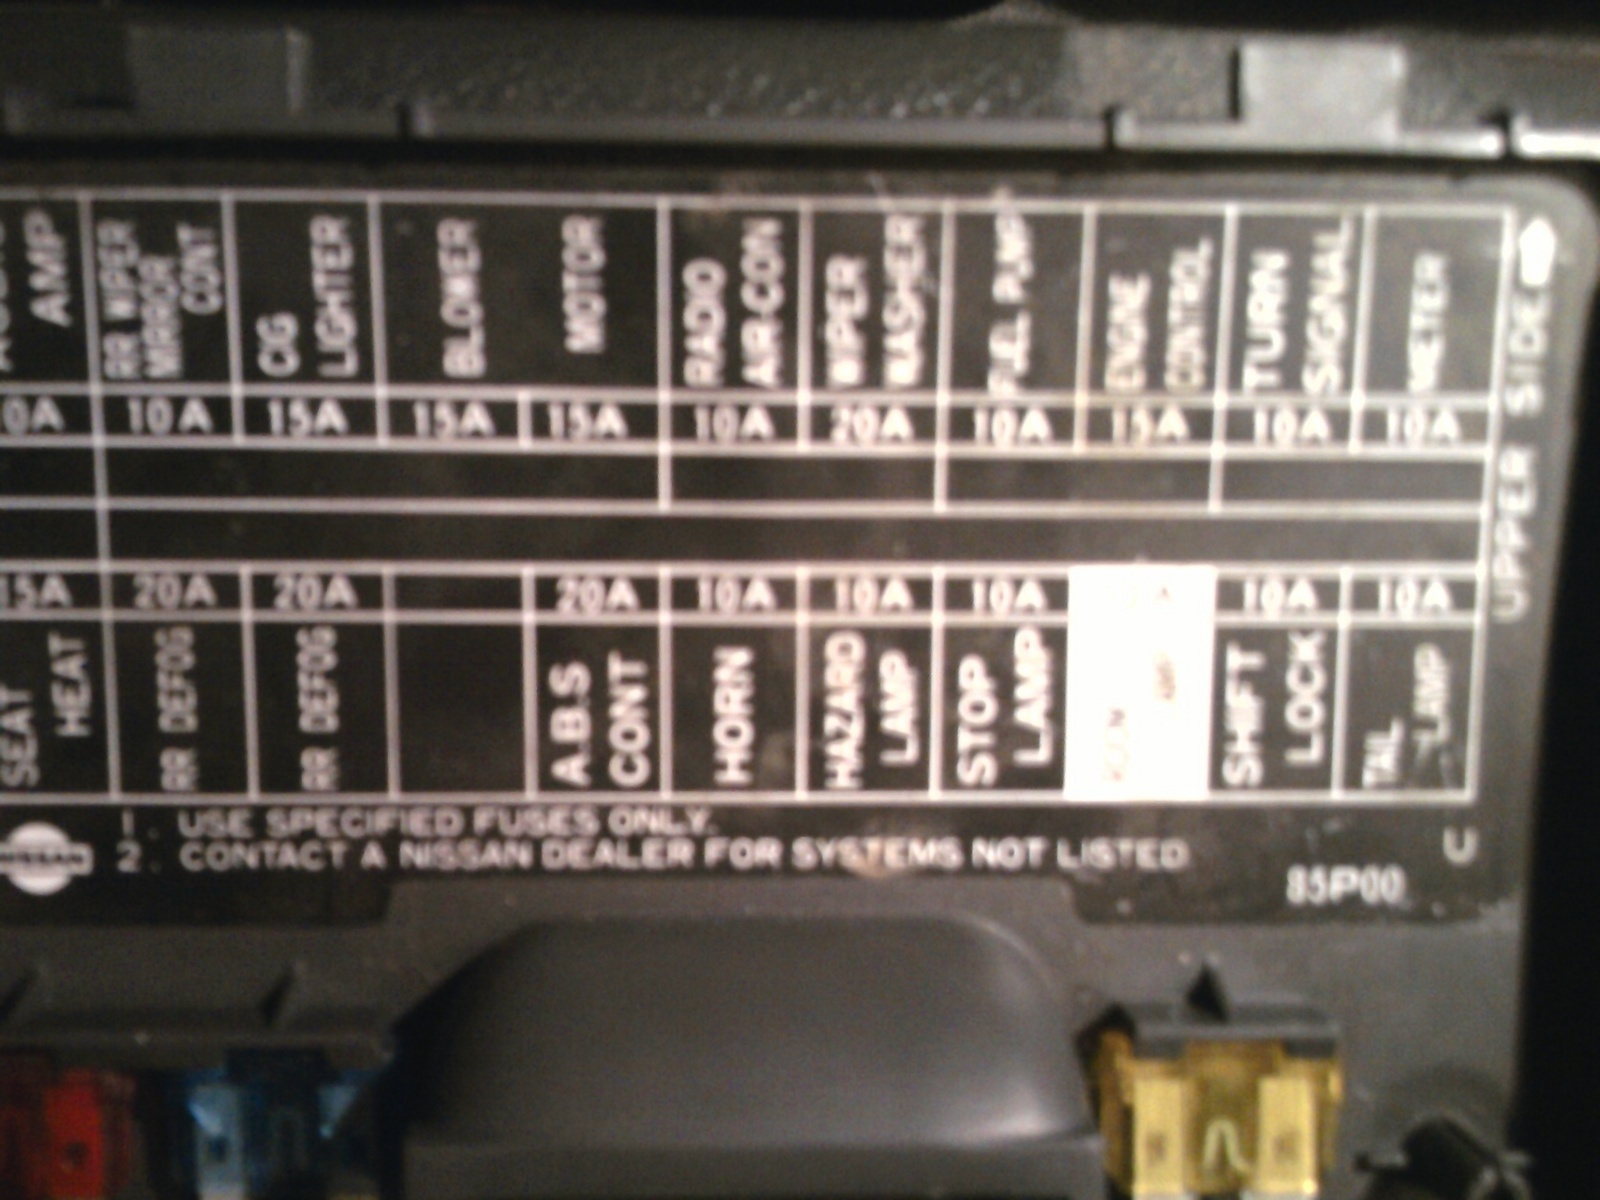 Fuse Box 95 Dodge Dakota Nissan Pickup Questions Where Is The For Hazard Lights On A 1995 4x4 Manual Speed Pick Up Located